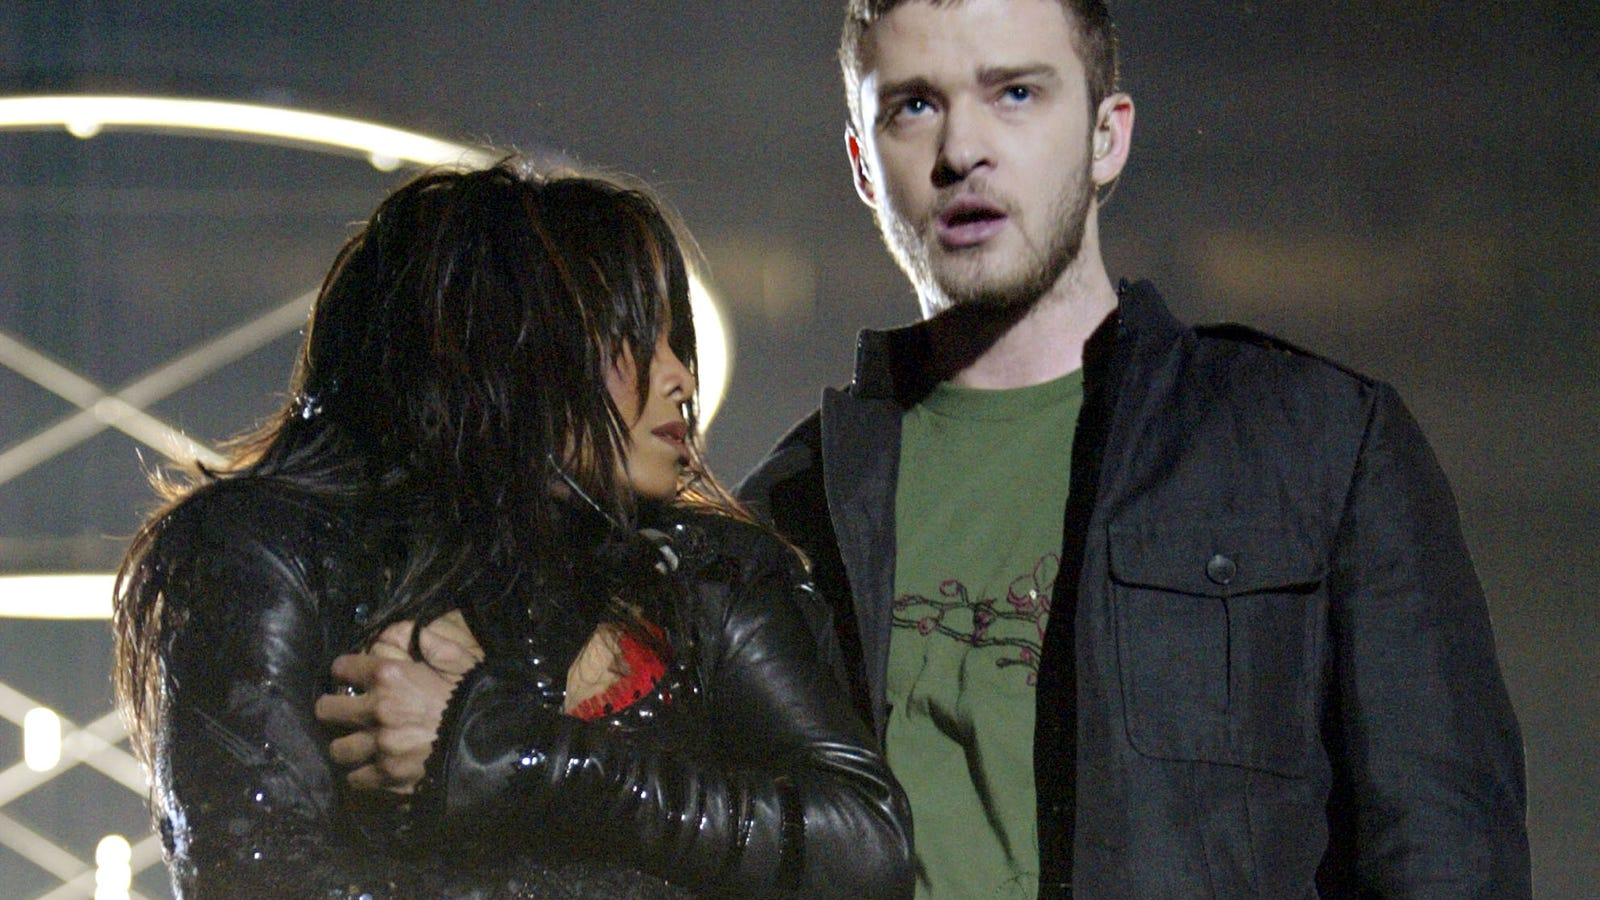 Justin Timberlake Claims He Made Peace With Janet Jackson, so Why I Do Still Want Michael Jackson's Ghost to Haunt Him in Retaliation?